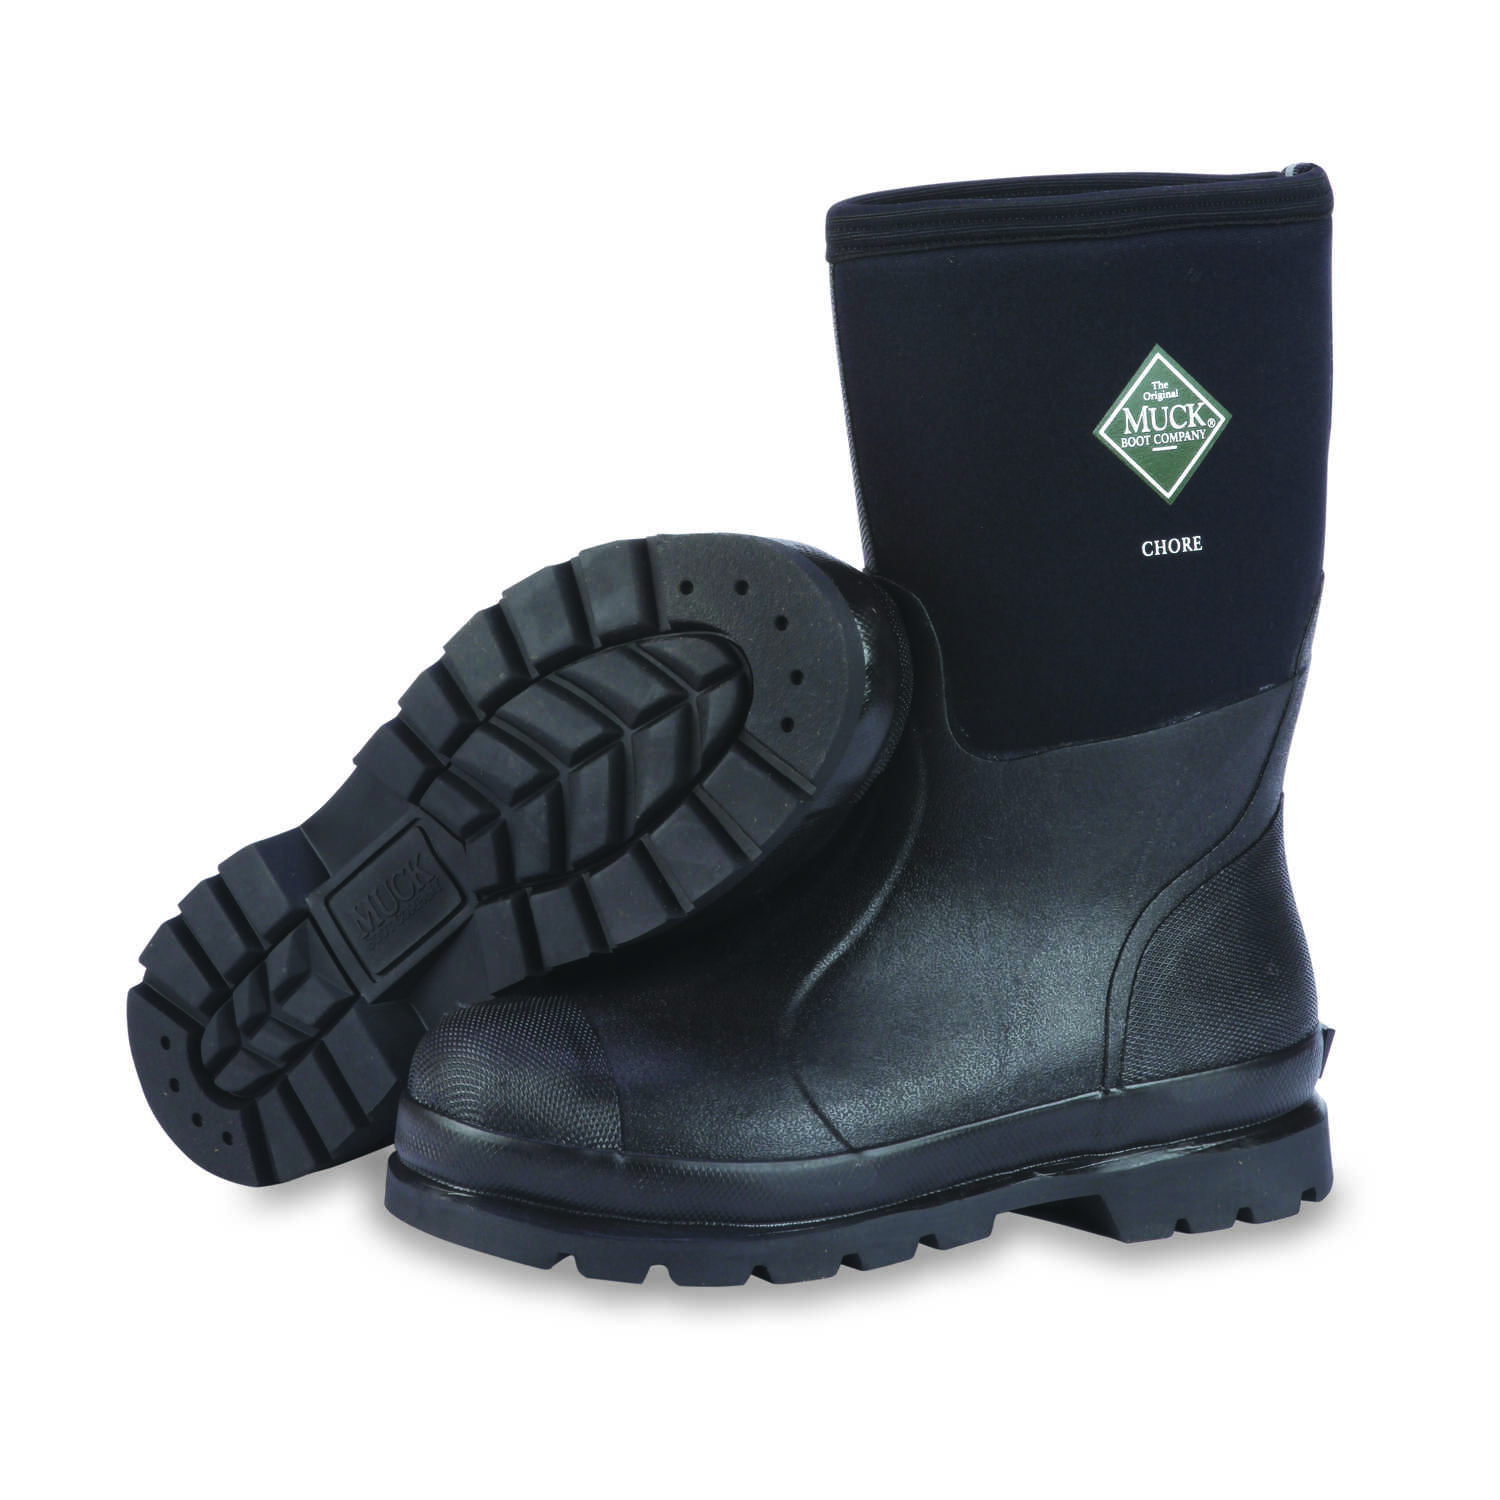 The Original Muck Boot Company  Chore Mid  Men's  Boots  13 US  Black